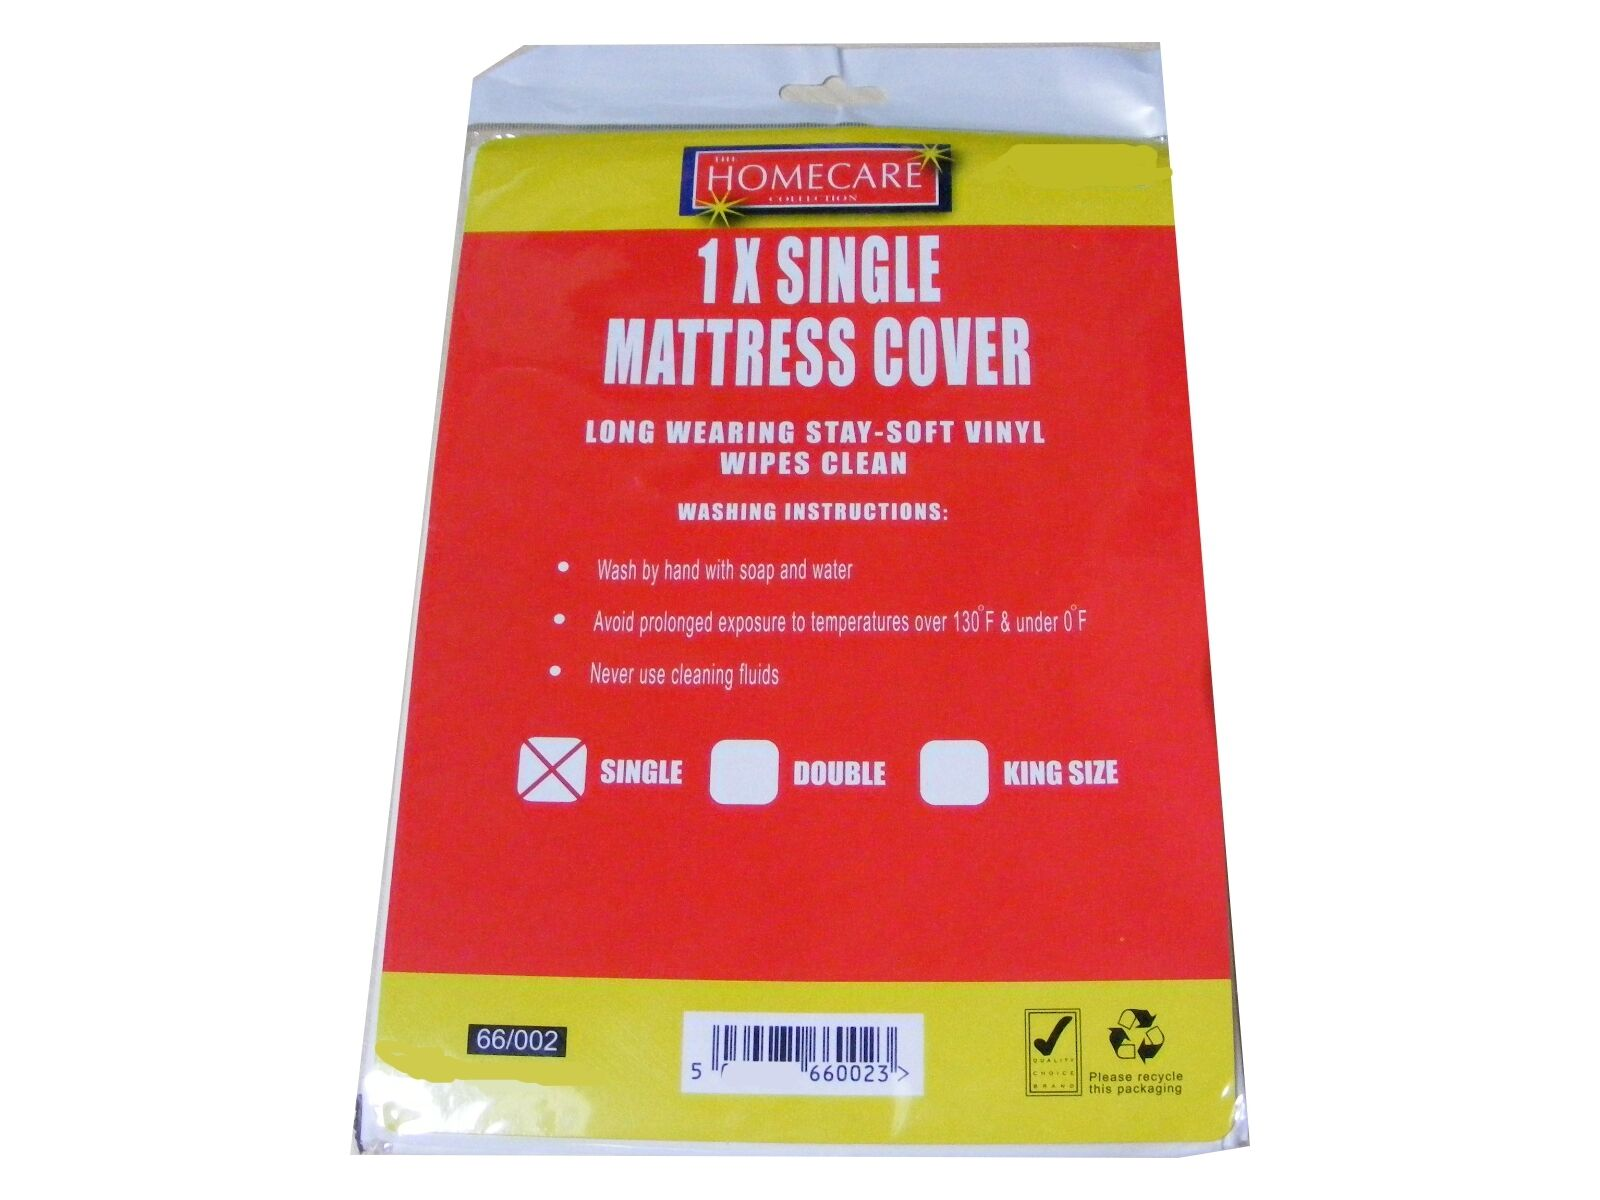 10 x SINGLE BED WETTING VINYL PLASTIC FITTED MATTRESS COVER SHEET PROTECTOR